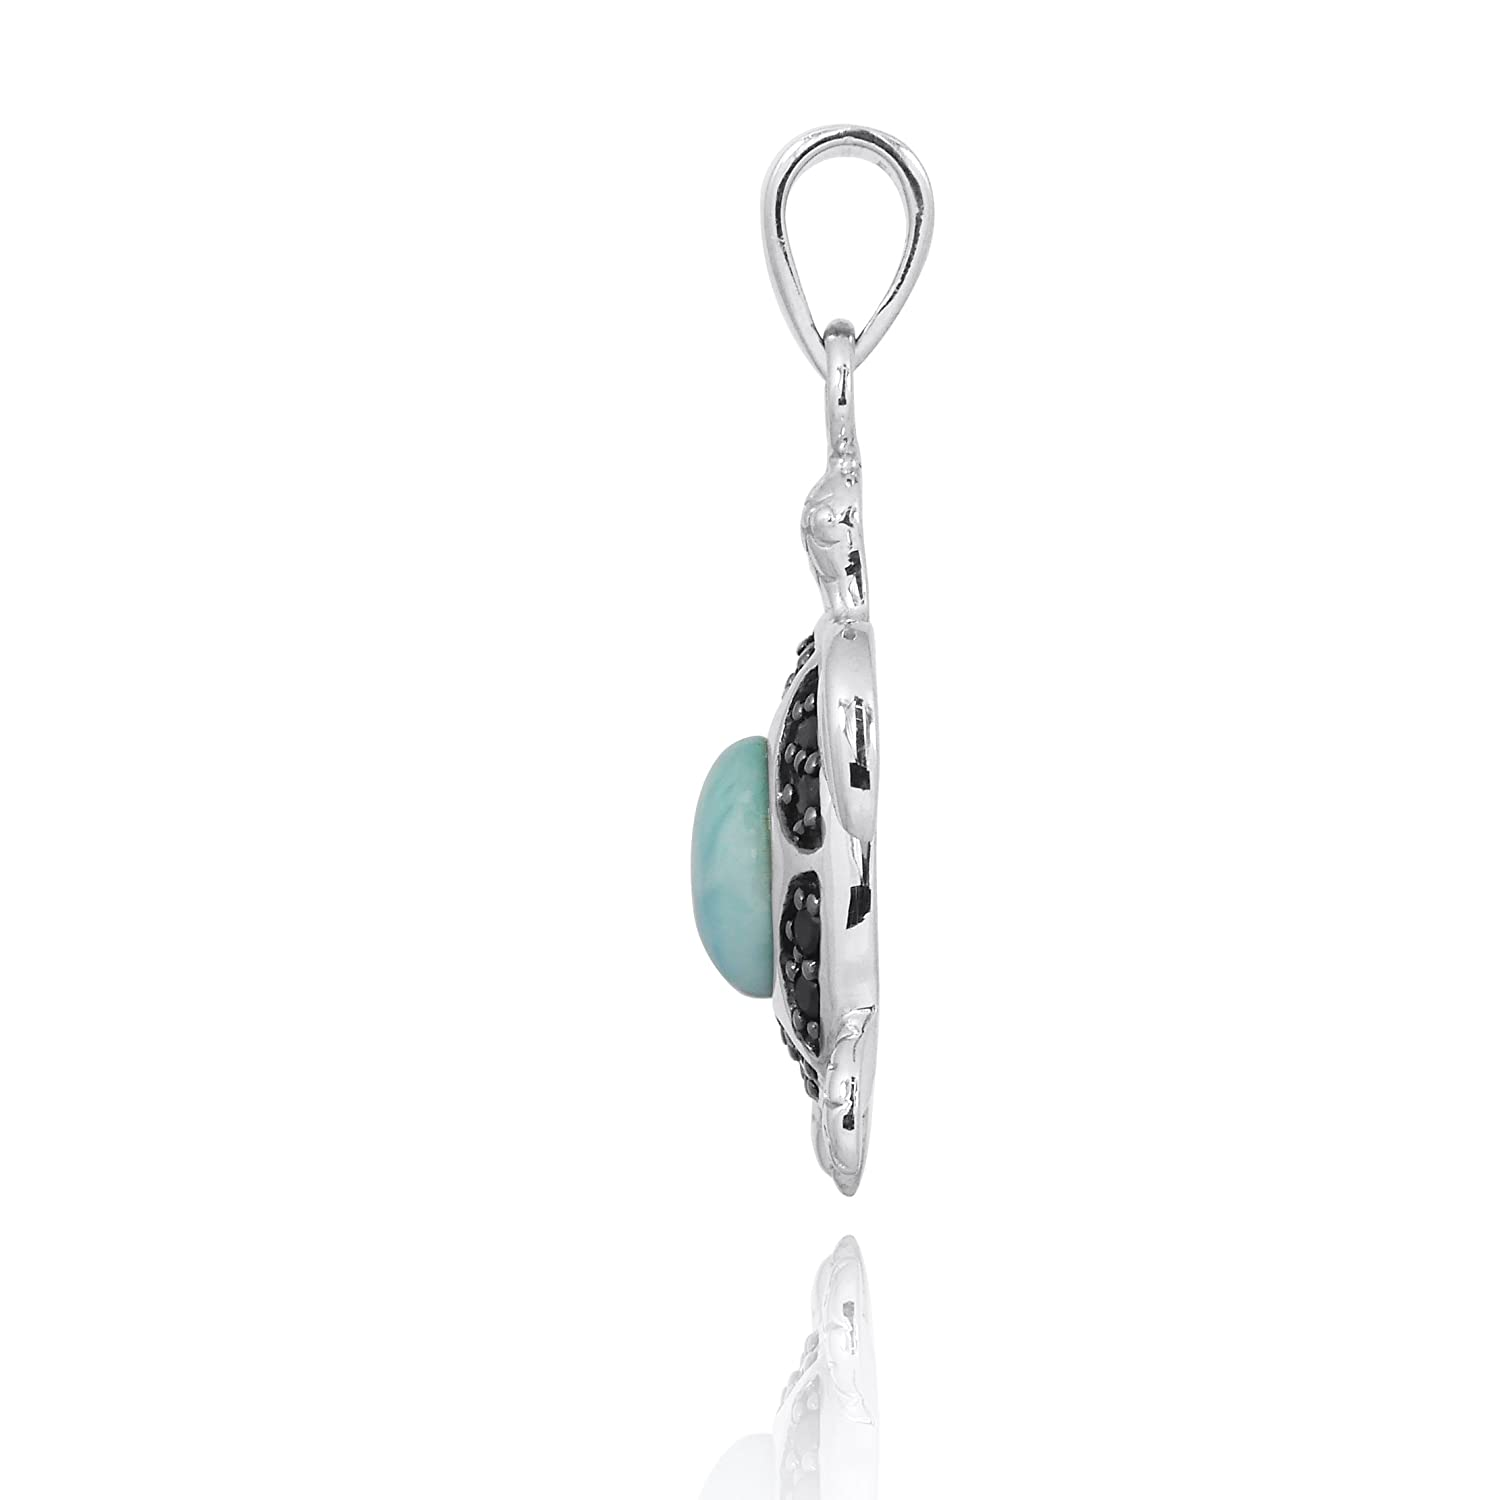 BTTS-NP11317-LAR-BKSP chain NOT included Sterling Silver Turtle Pendant with Larimar and Black Spinel